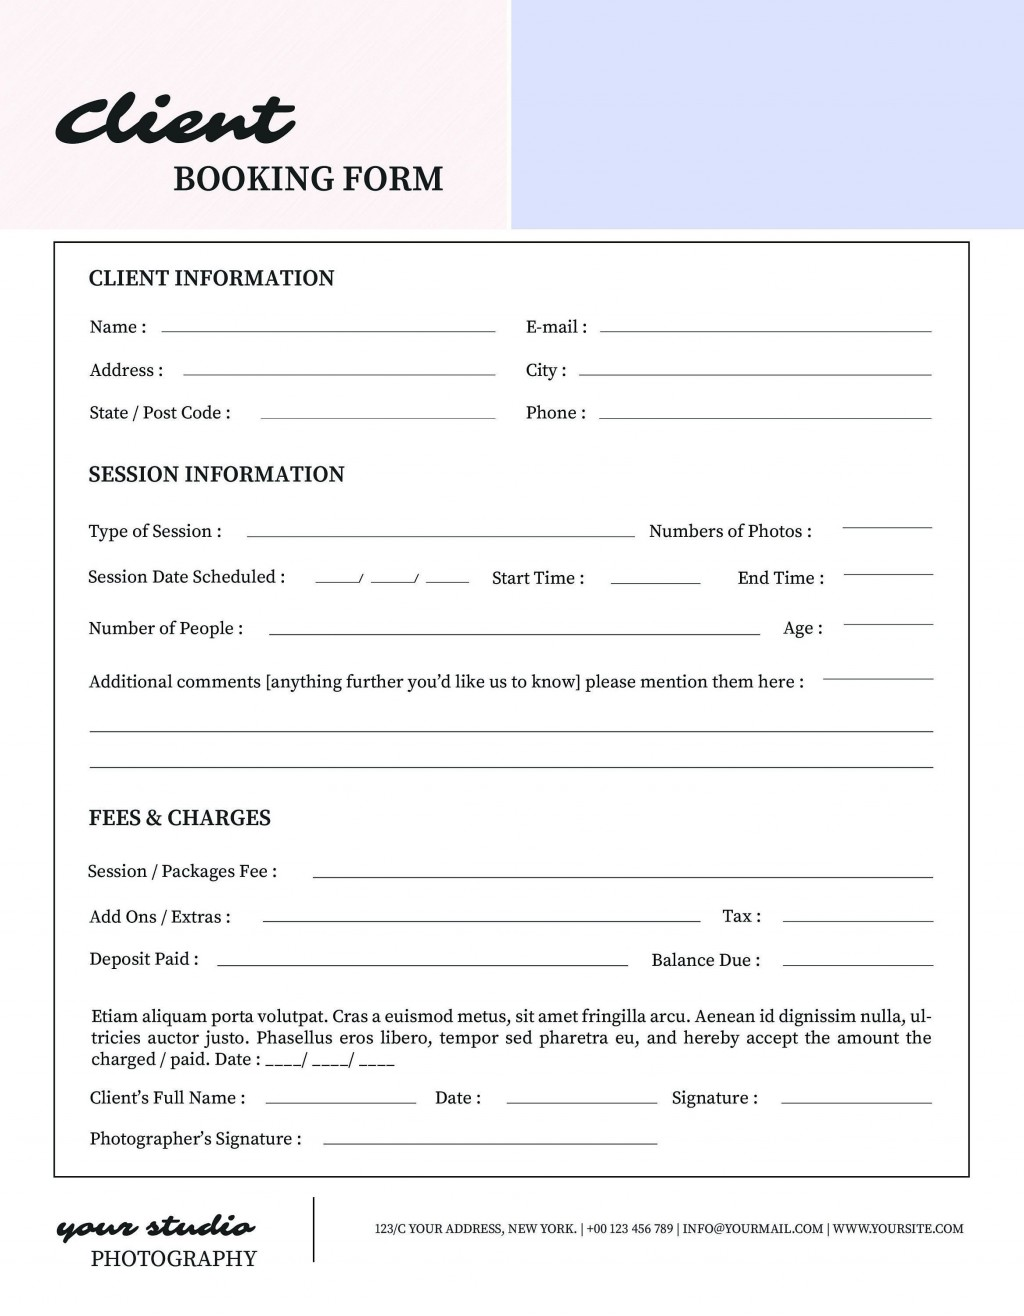 001 Unusual New Busines Client Information Form Template Highest Clarity Large